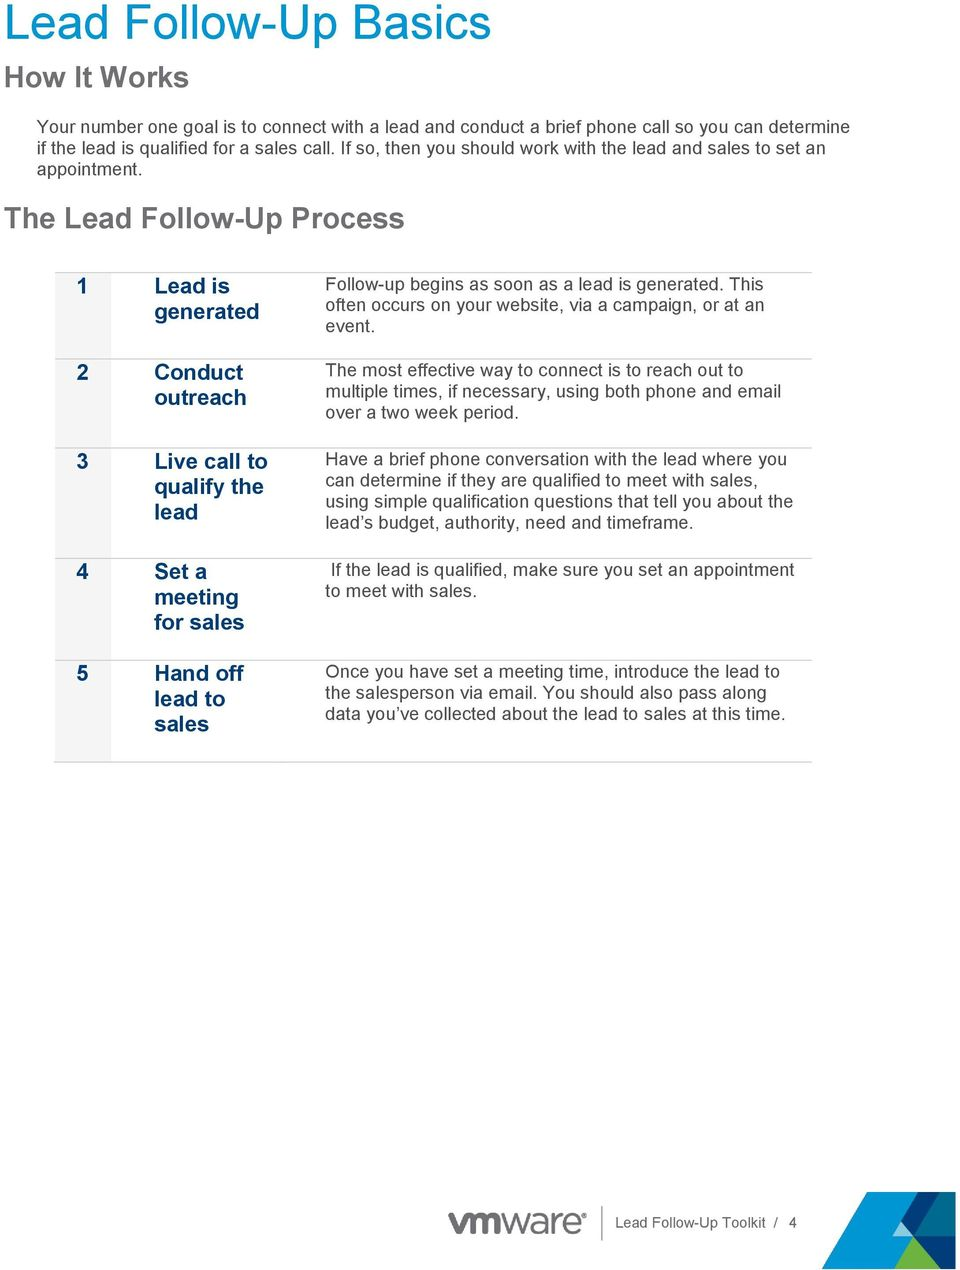 The Lead Follow-Up Process 1 Lead is generated 2 Conduct outreach 3 Live call to qualify the lead 4 Set a meeting for sales 5 Hand off lead to sales Follow-up begins as soon as a lead is generated.